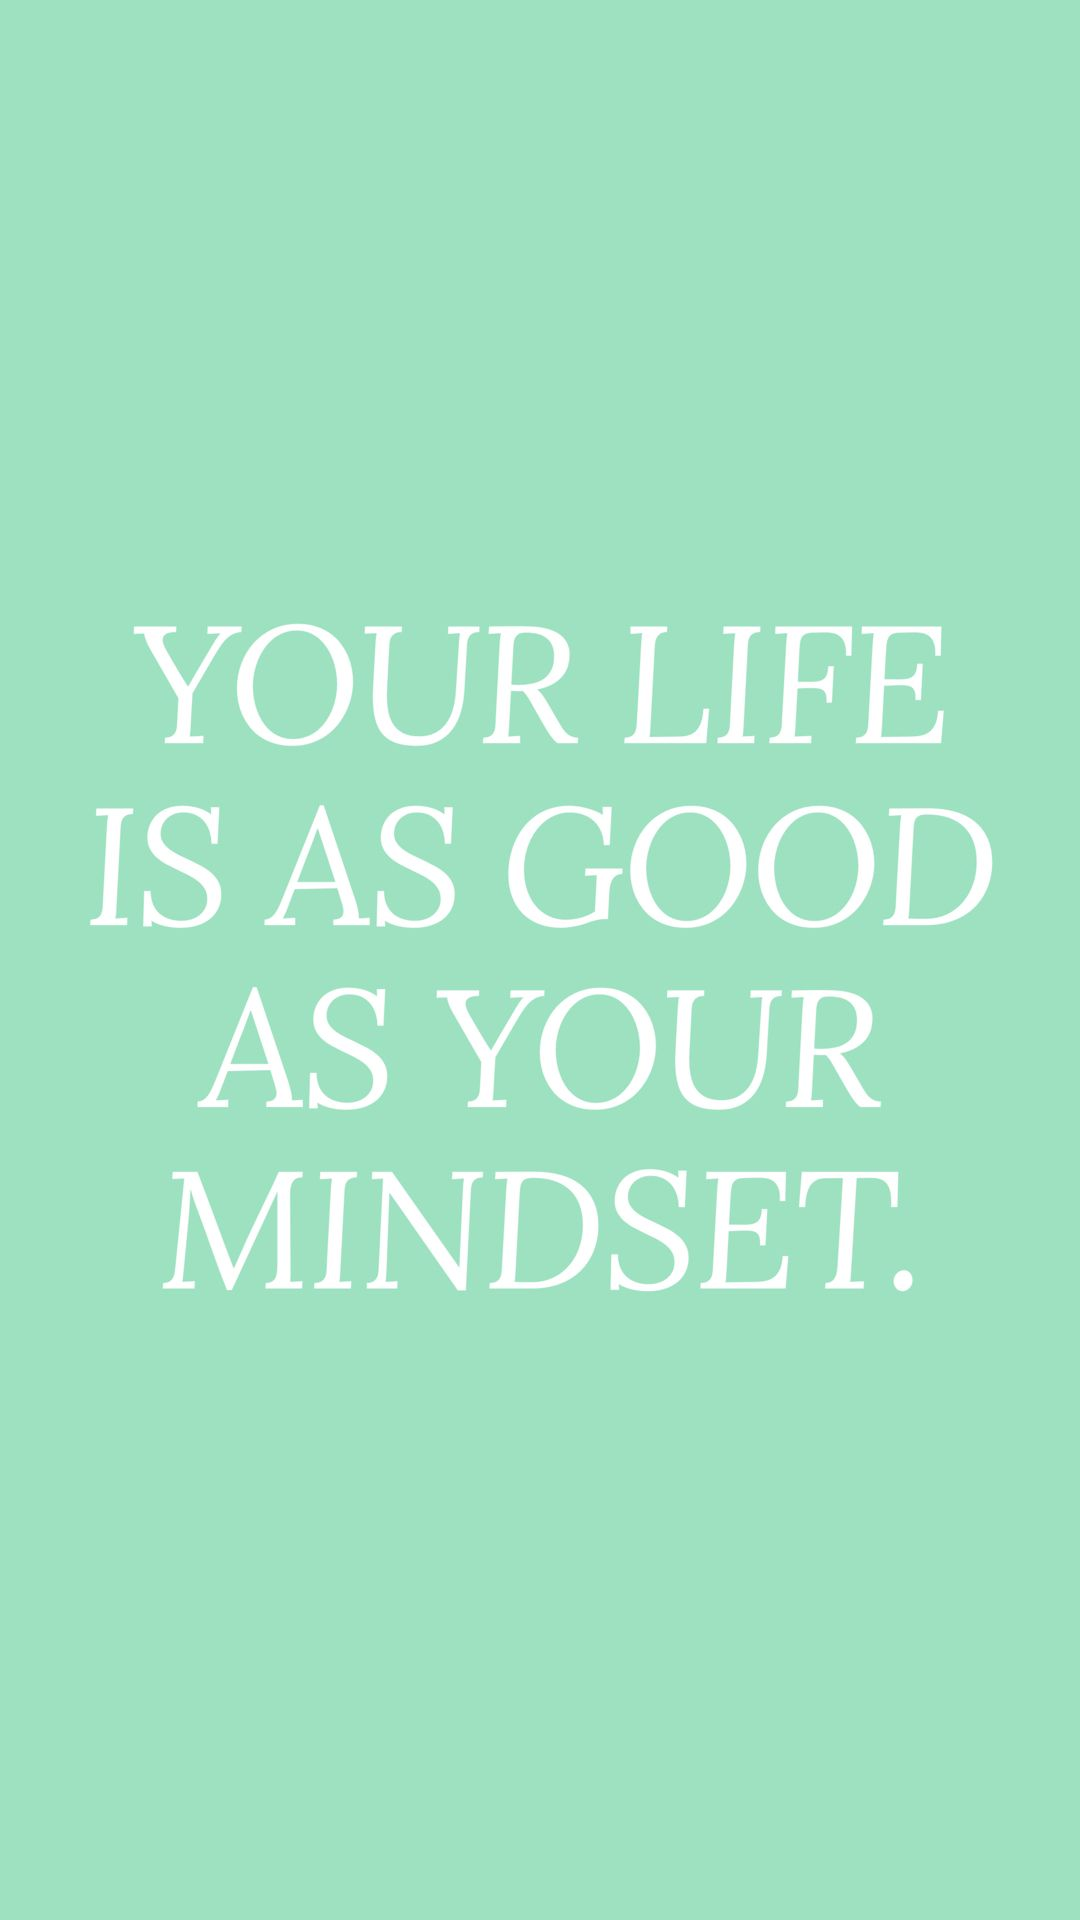 positive thinking change your mindset mint aesthetic quote